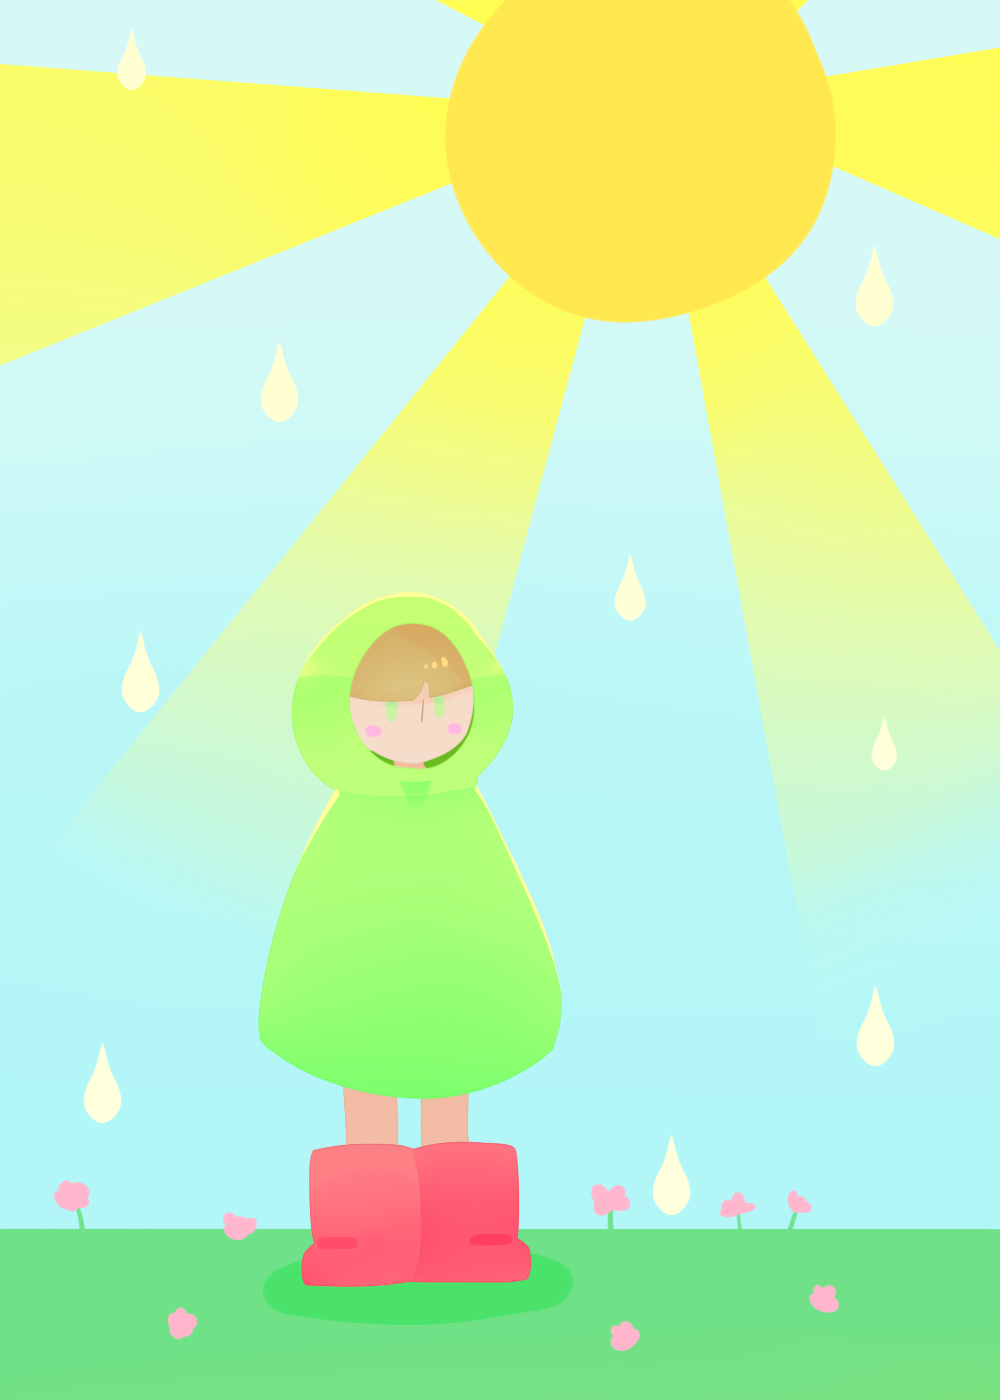 Sunshower by GreenPatch on DeviantArt # Sunshower Love_194845